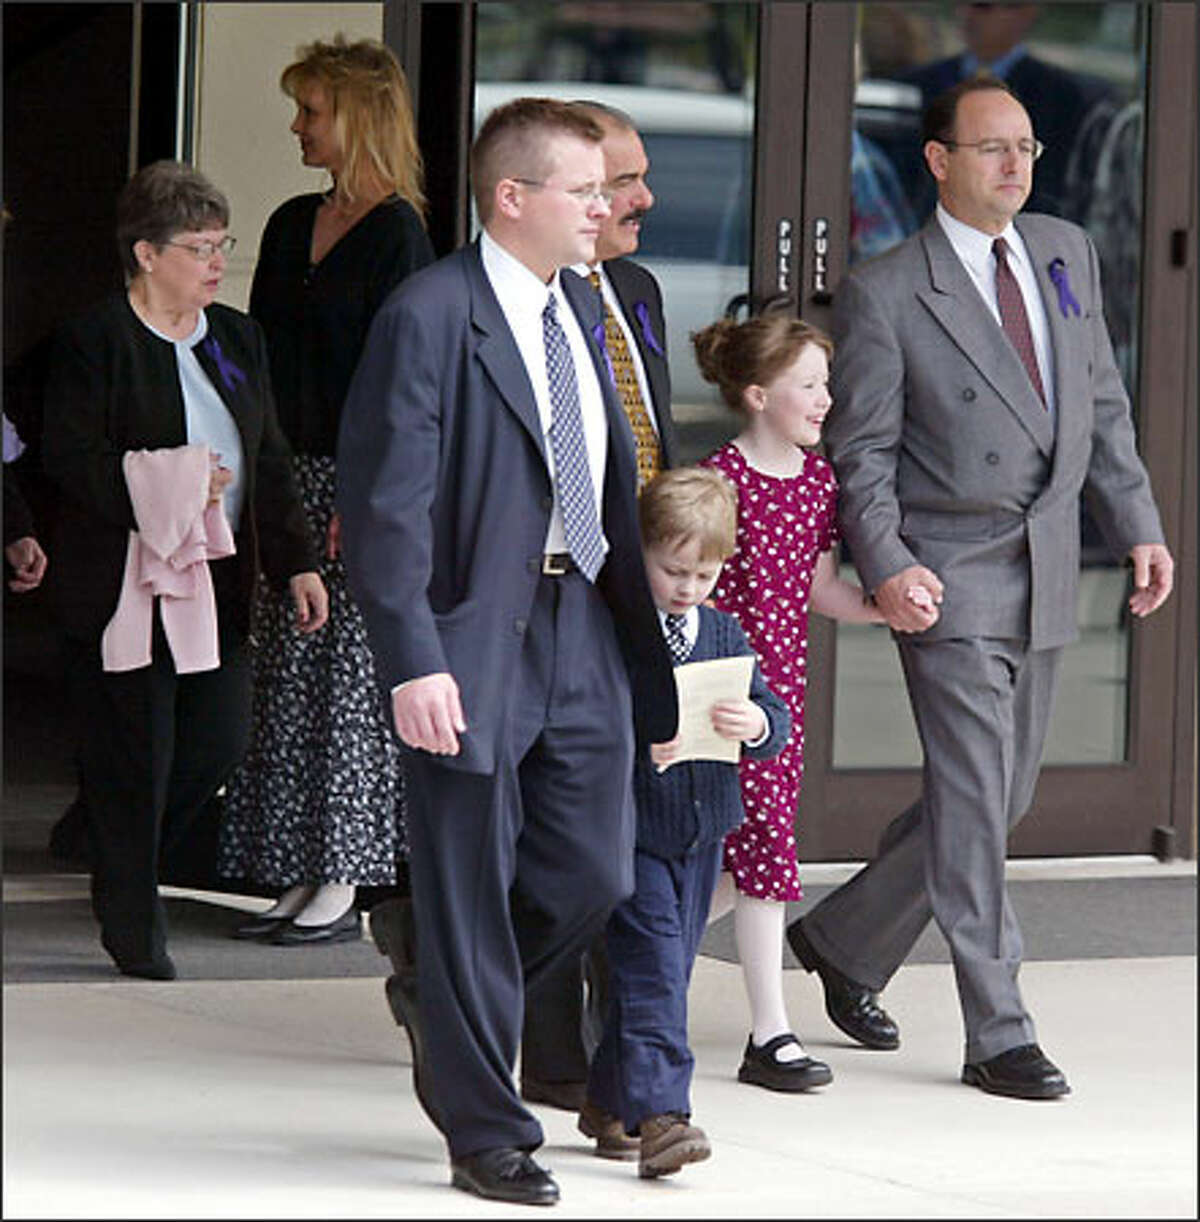 The children of Crystal Brame, David, 5, and Haley, 8, are escorted from their mother's funeral at Chapel Hill Presbyterian Church in Gig Harbor by unidentified family and friends. They are followed by their maternal grandmother, Patty Judson, left. Crystal Brame died May 3, a week after being shot in the head in a shopping center parking lot by her husband, Tacoma Police Chief David Brame, who then killed himself.